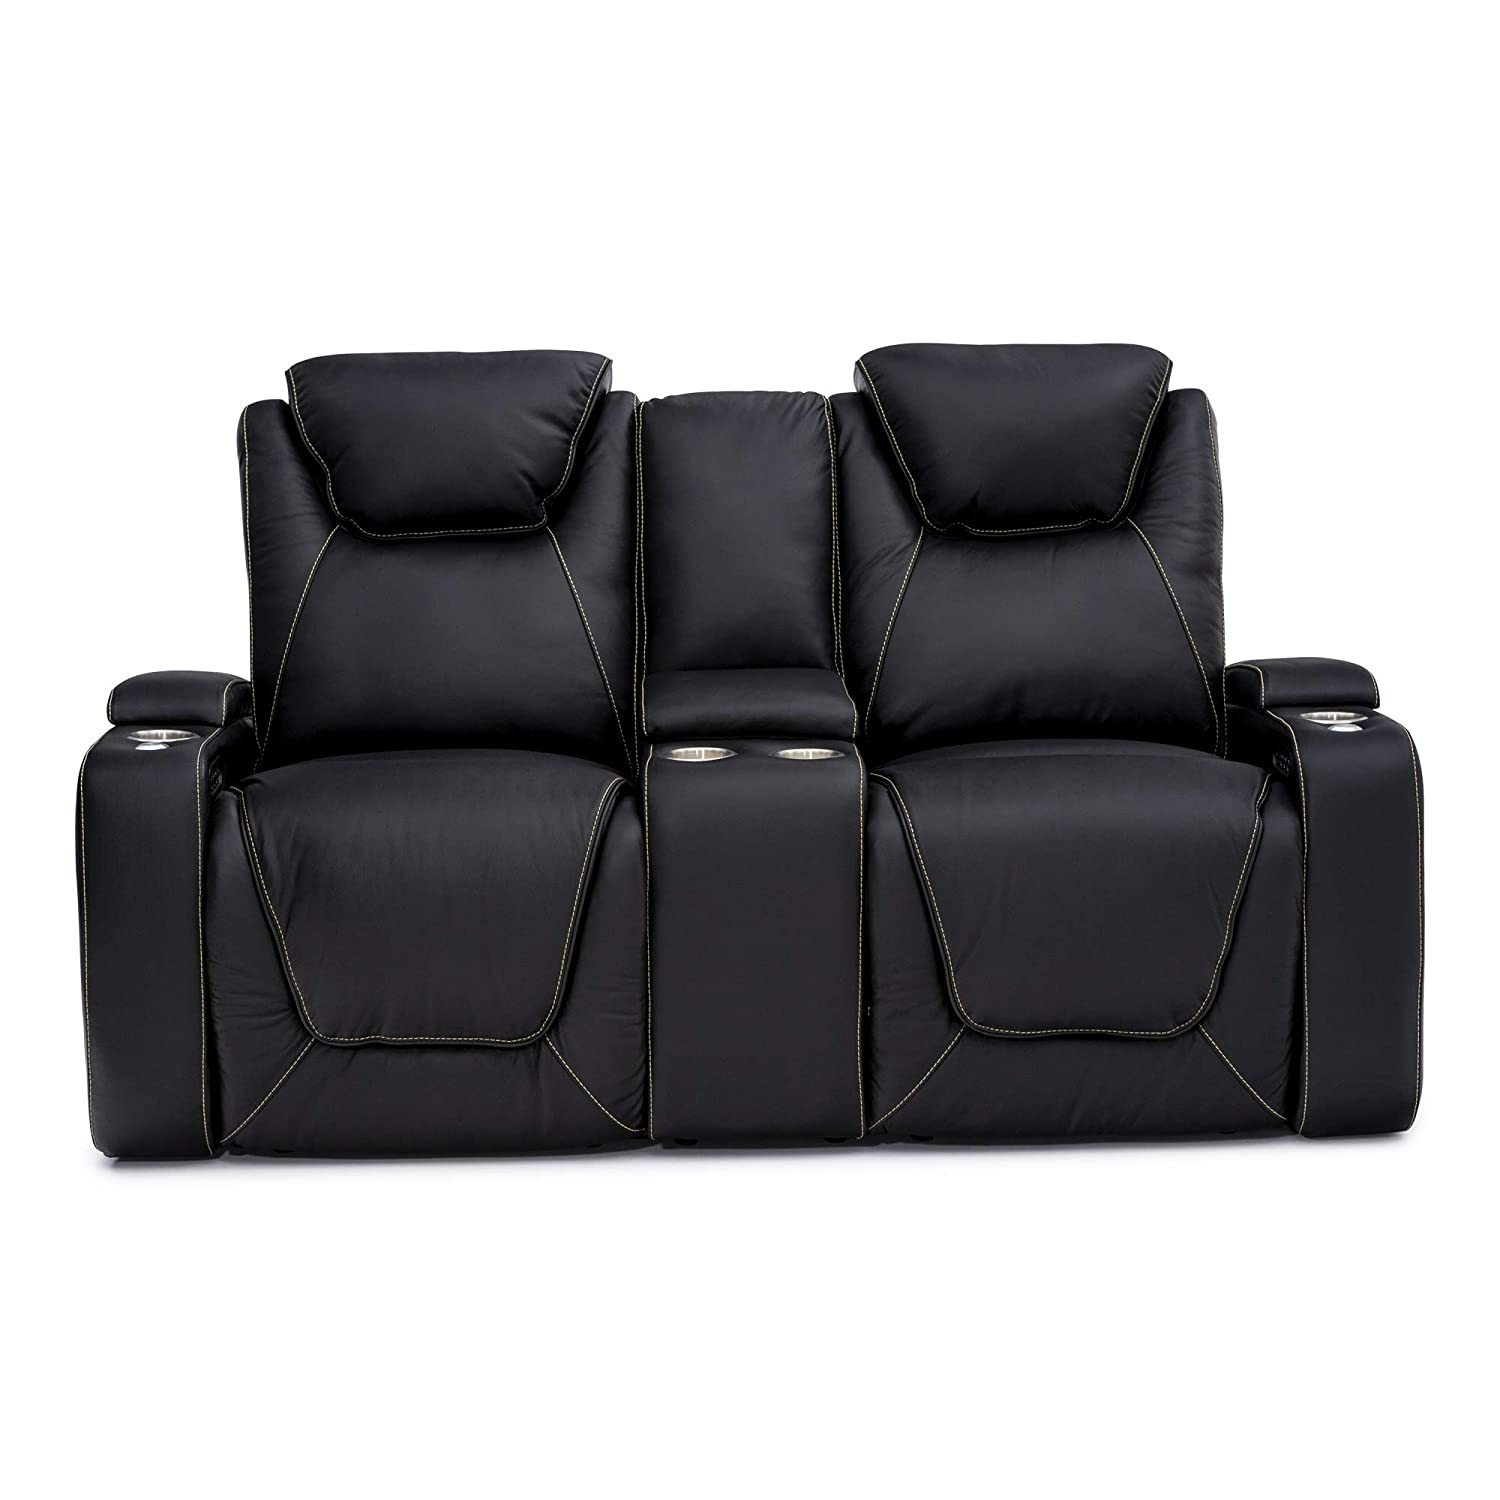 Seatcraft Vienna Home Theater Seating Leather Sofa Loveseat Recline, Adjustable Headrest, Powered Lumbar Support, Center Storage Console, and Cup Holders, Black